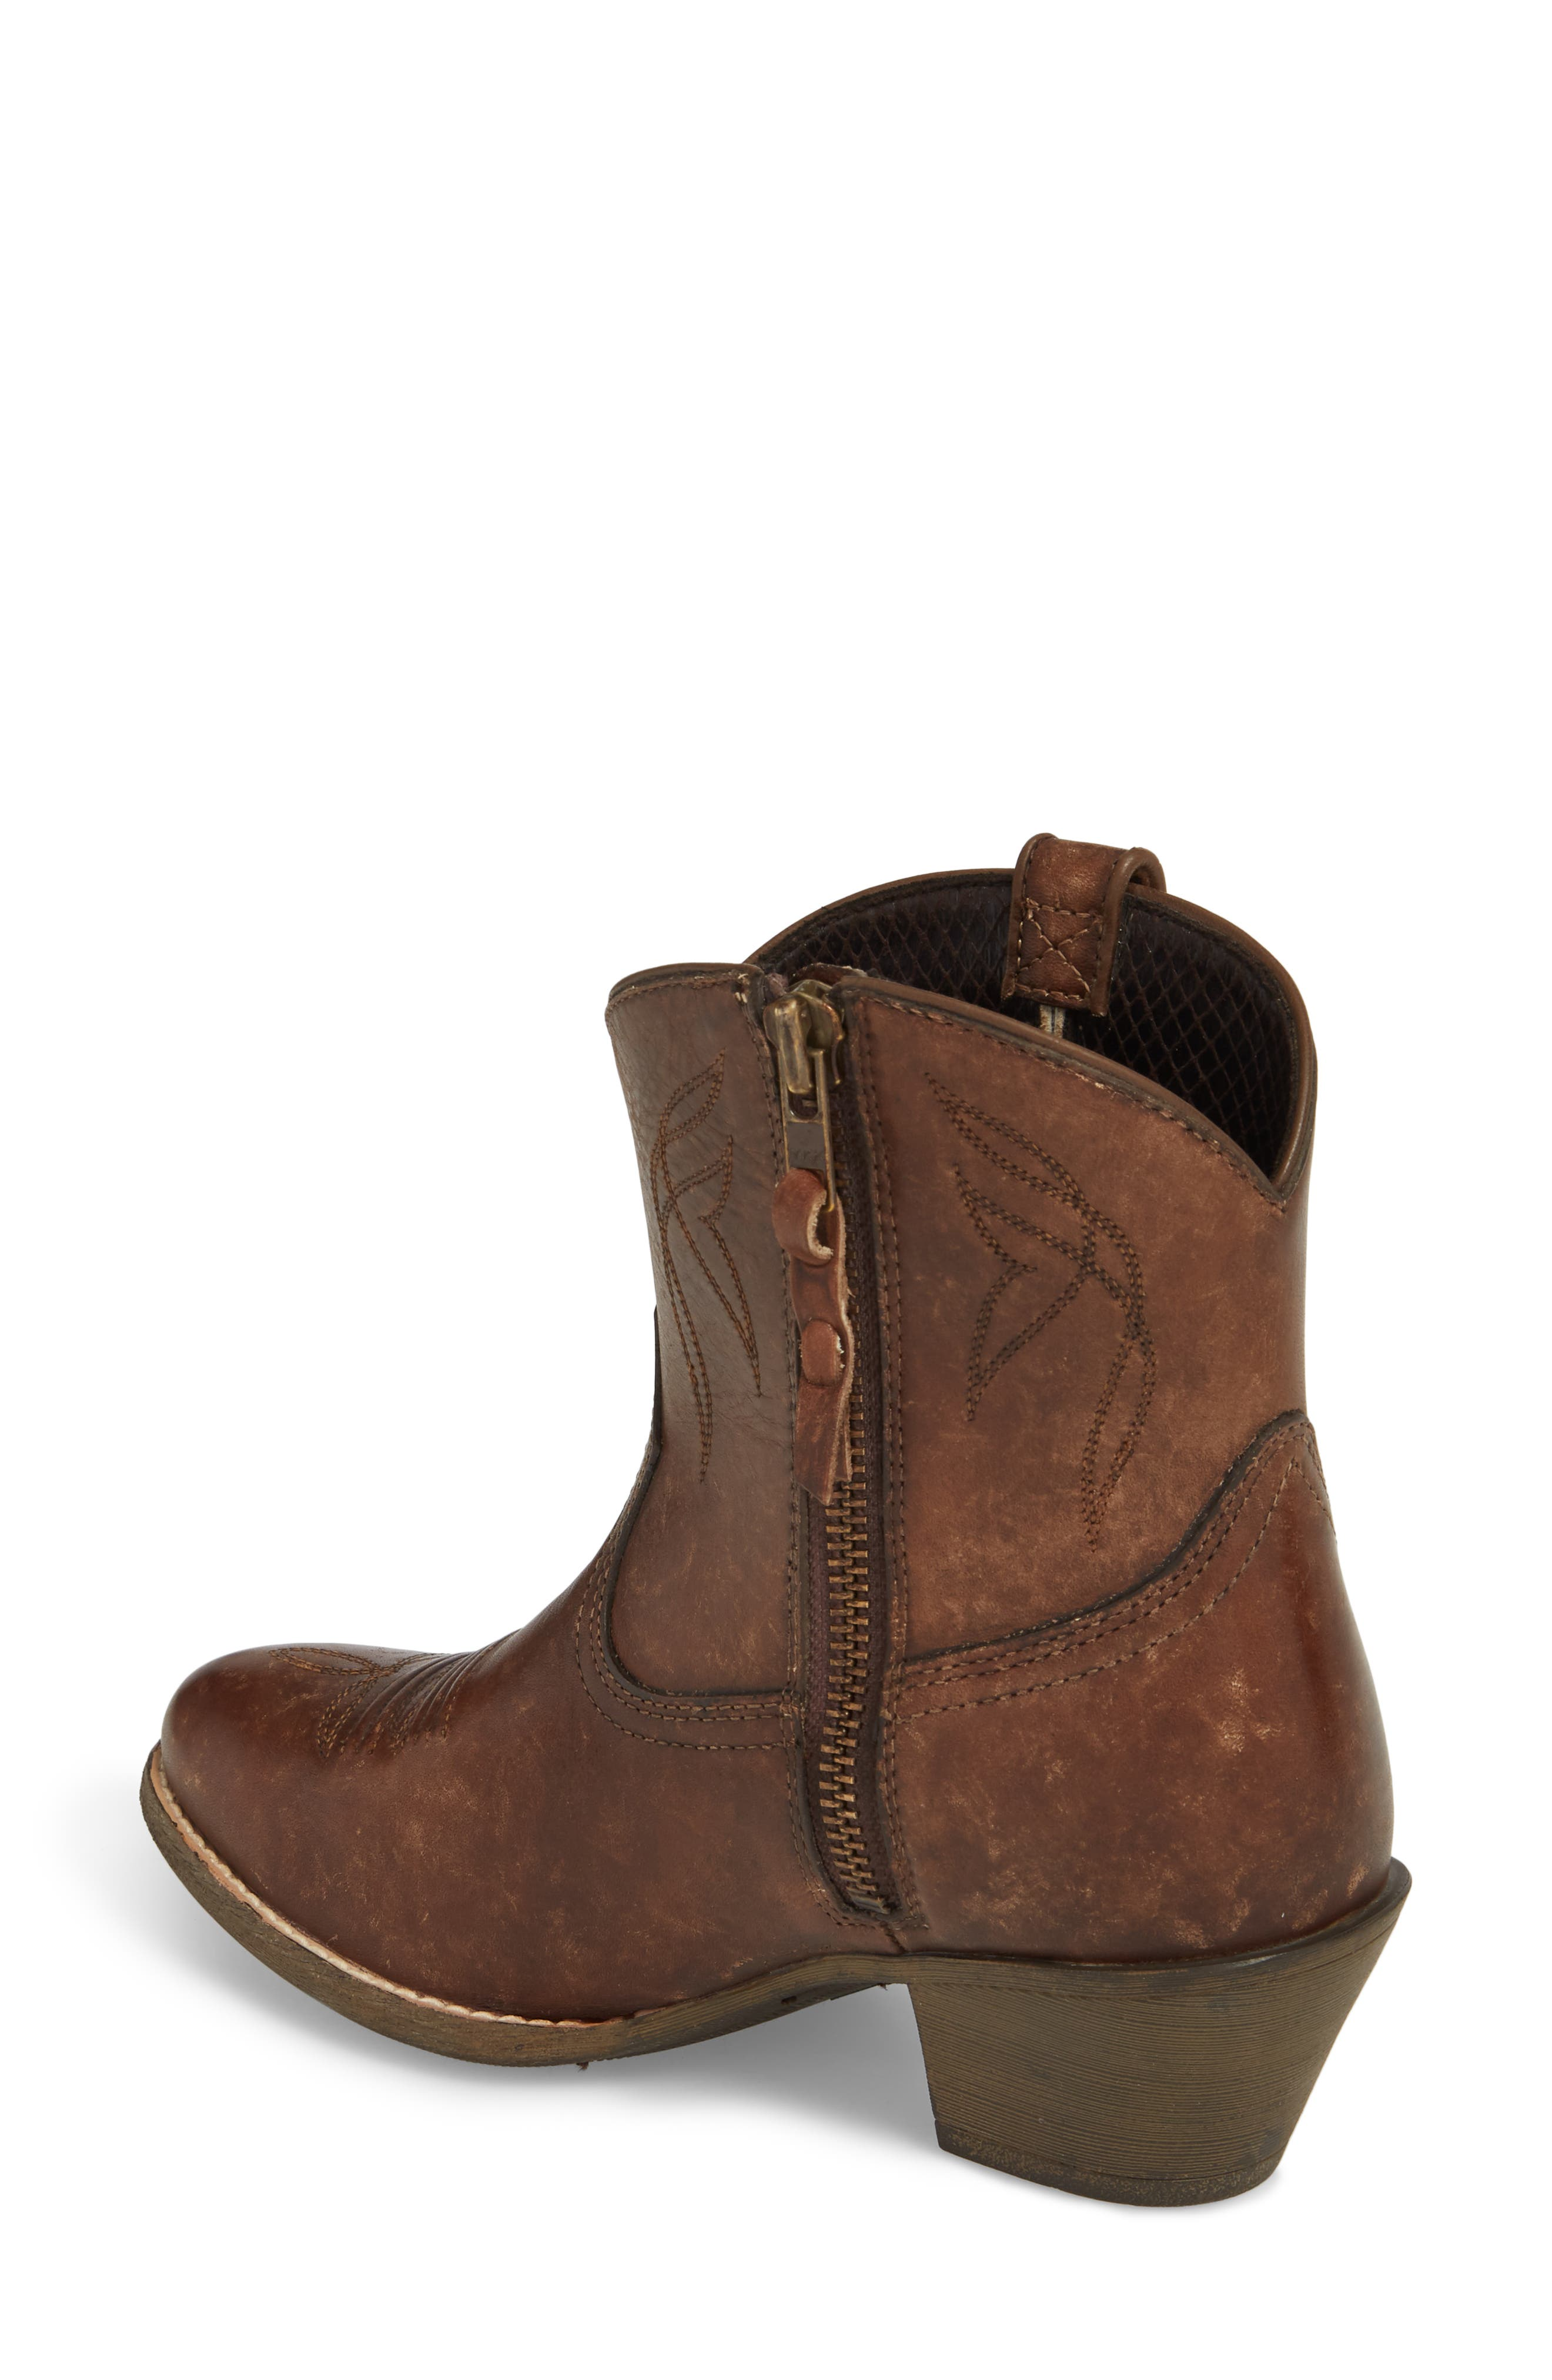 Darlin Short Western Boot,                             Alternate thumbnail 2, color,                             Distressed Brown Leather